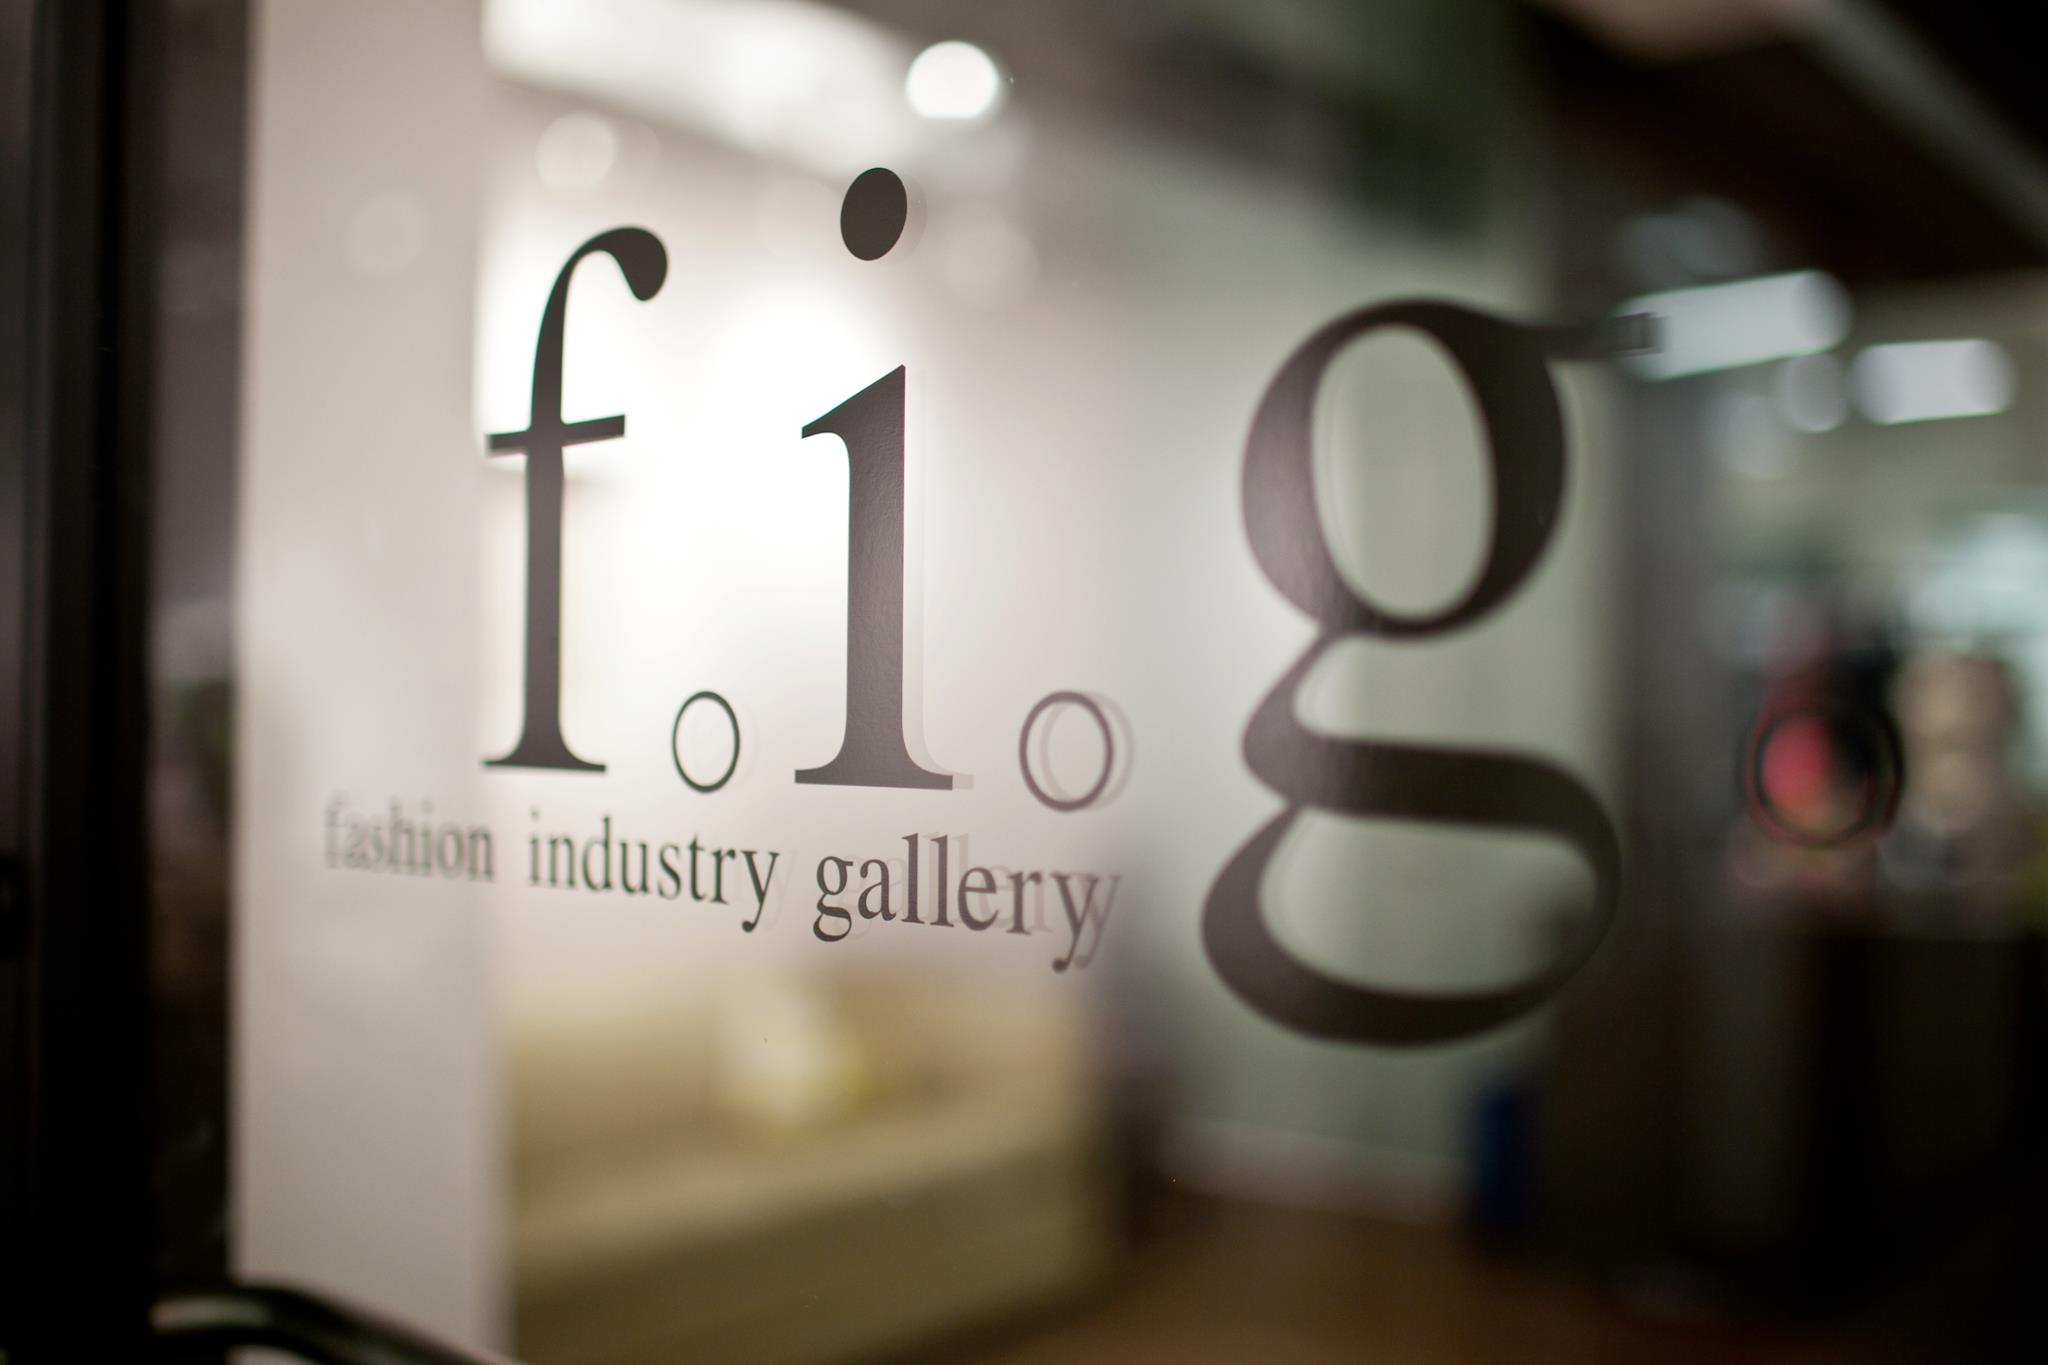 Fashion industry gallery - Photo Facebook